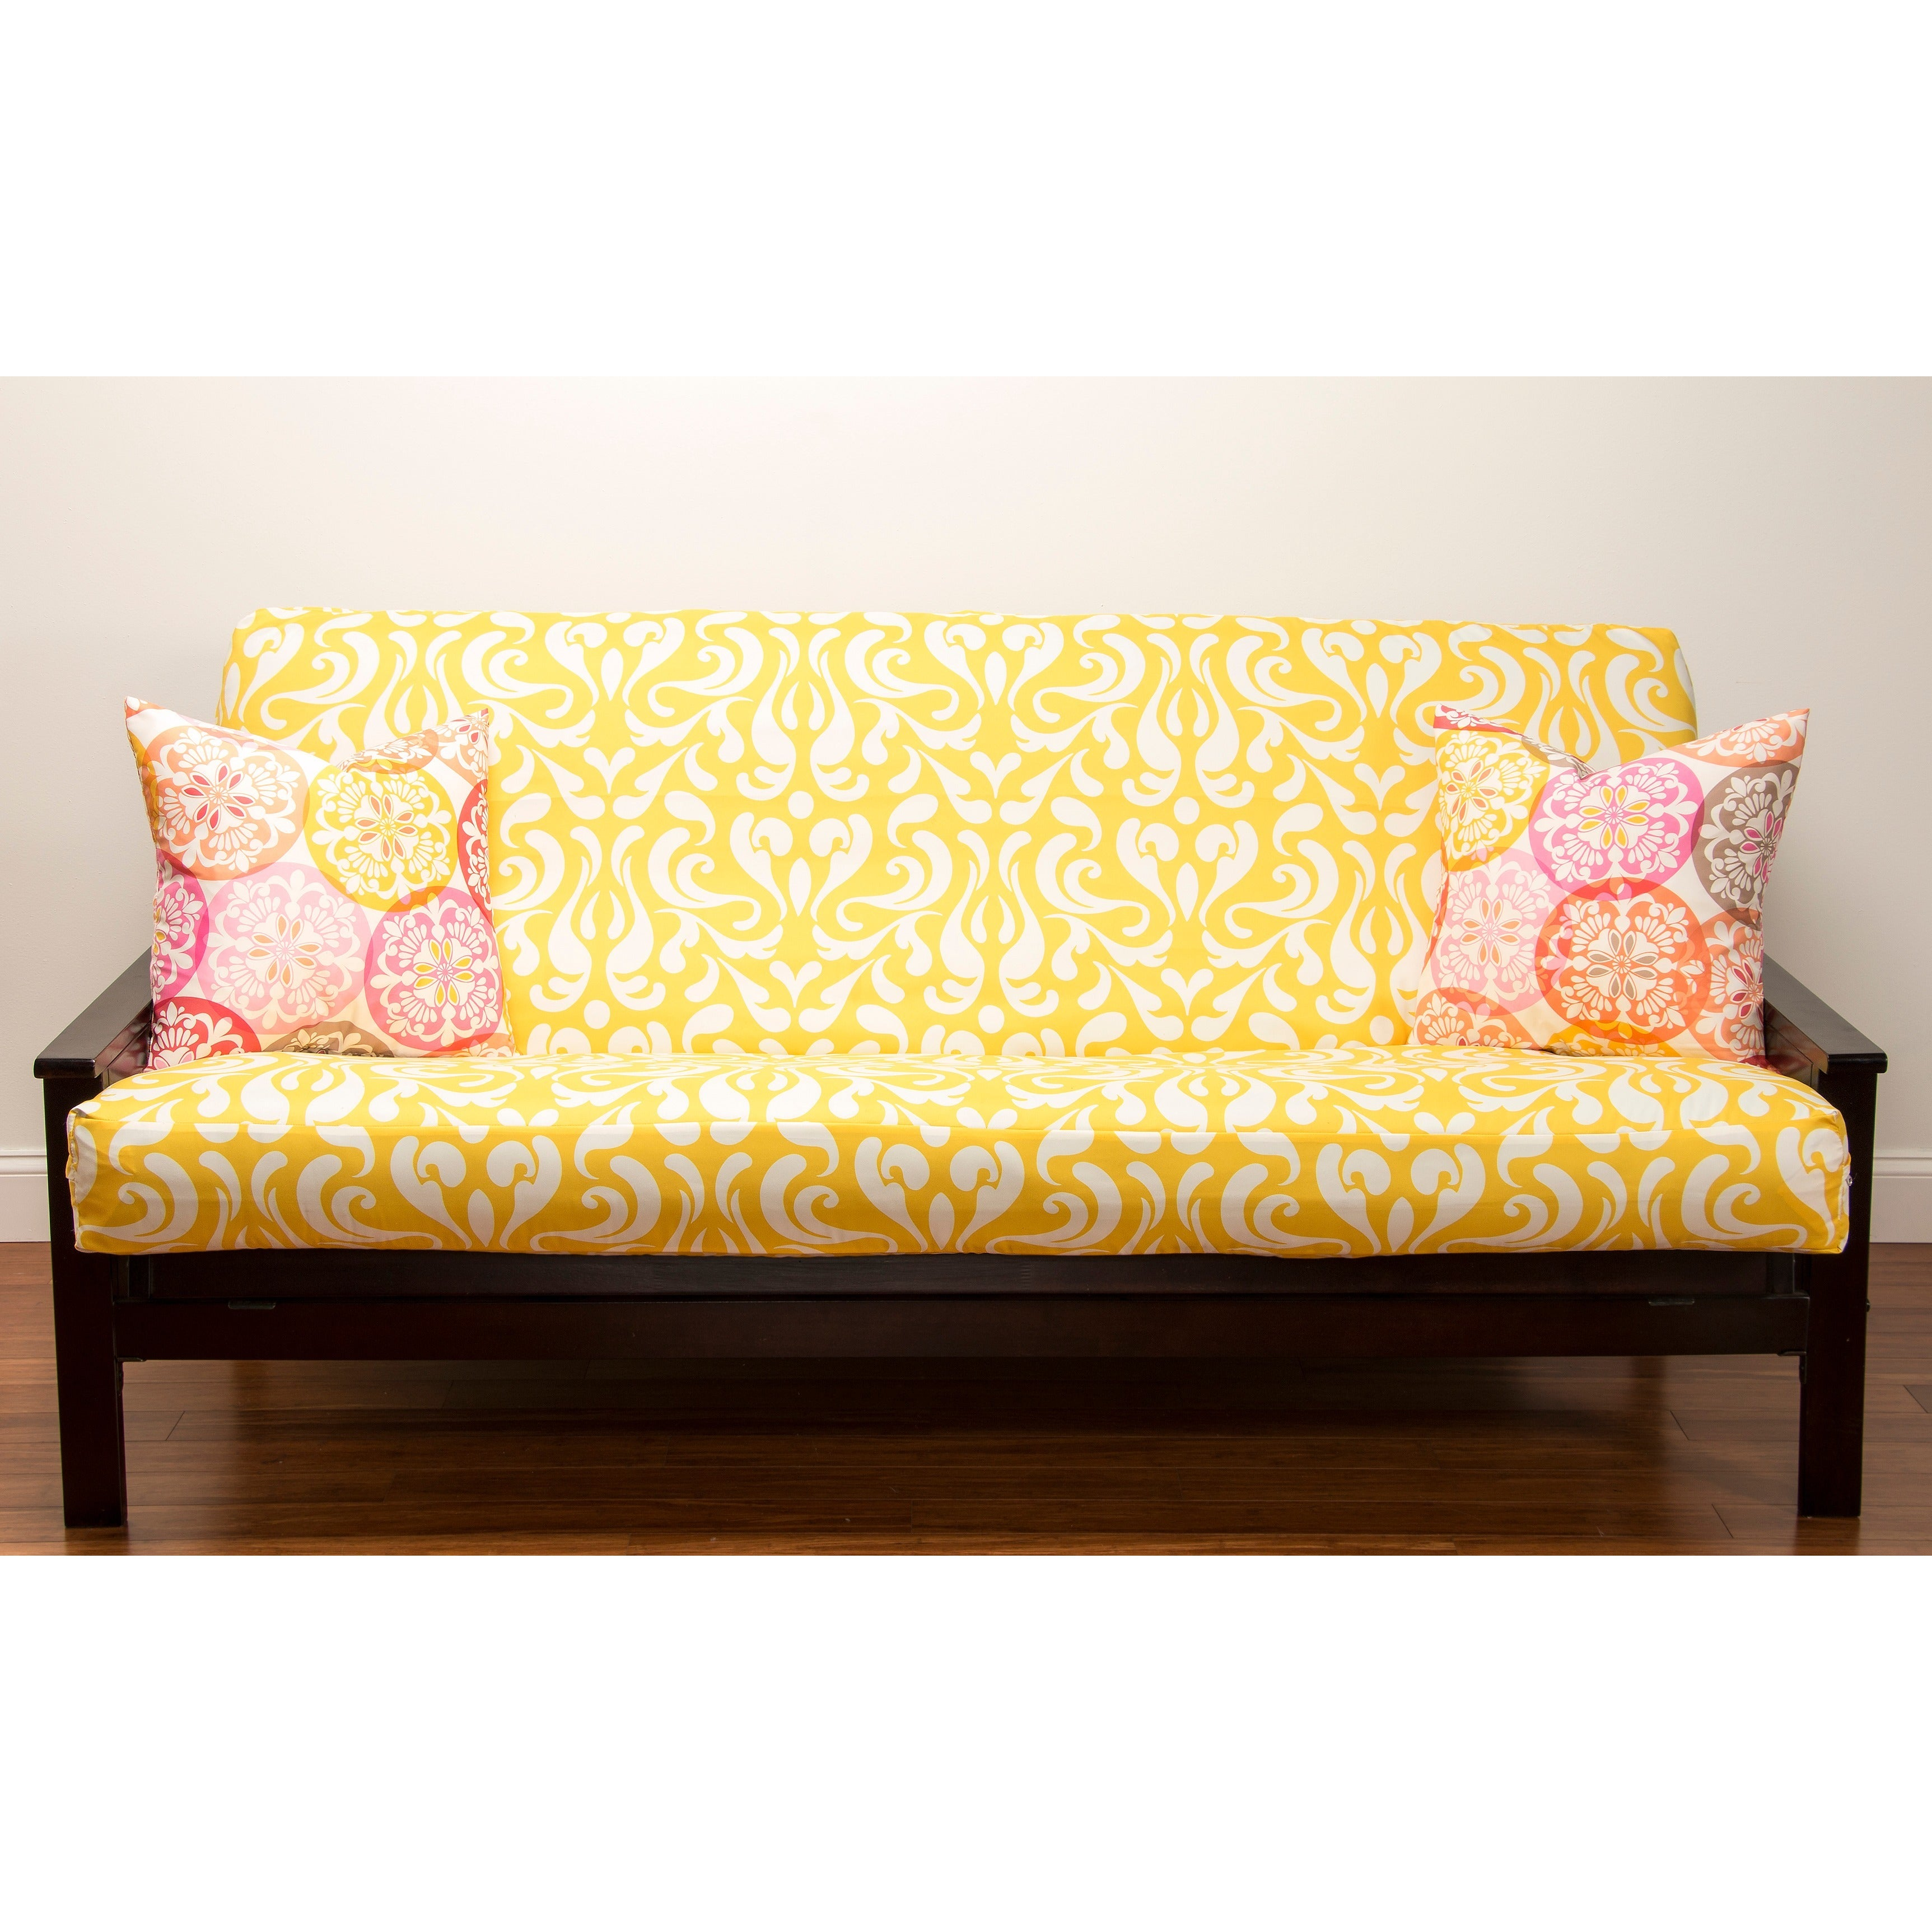 Adele Yellow Futon Cover Free Shipping Today Com 8142004